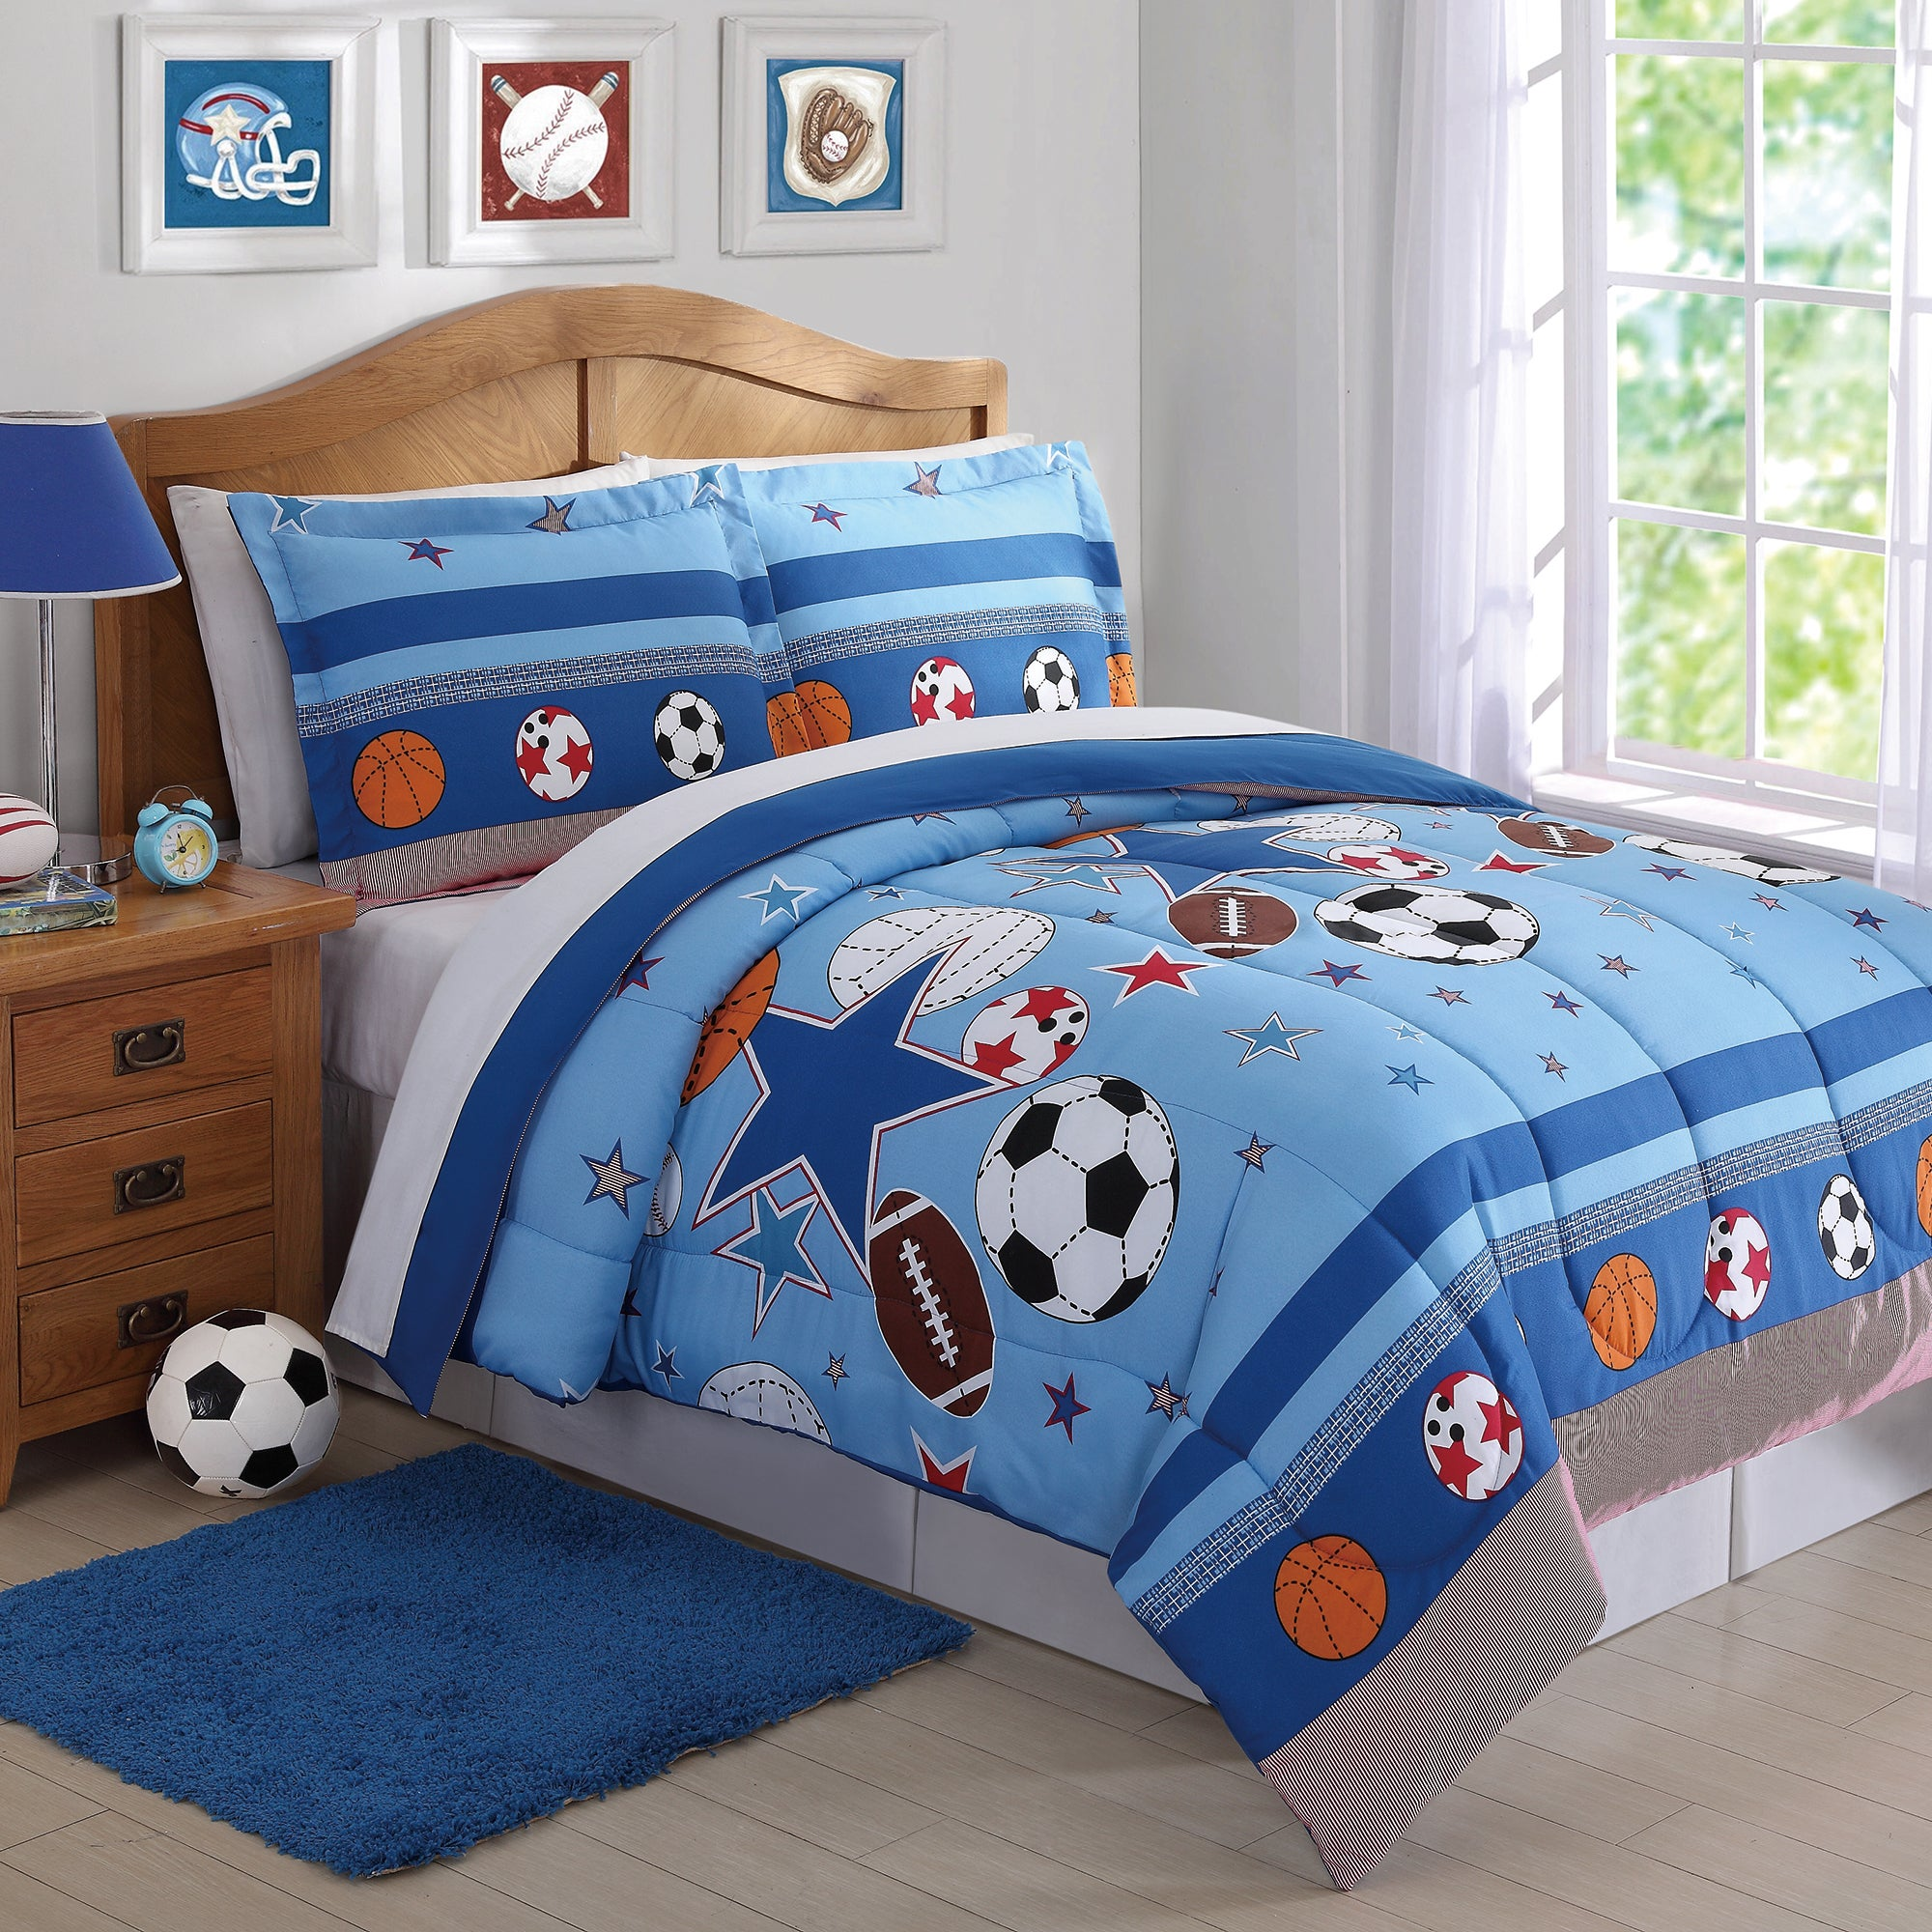 chair sports bed bedding bedrooms large comfortable simple brick toys polka unit grey boys themed sport storage comforter artistic room blue creative wooden wall dot art cabinet bedroom light tv spacious modern concrete white twin guitarist picture round